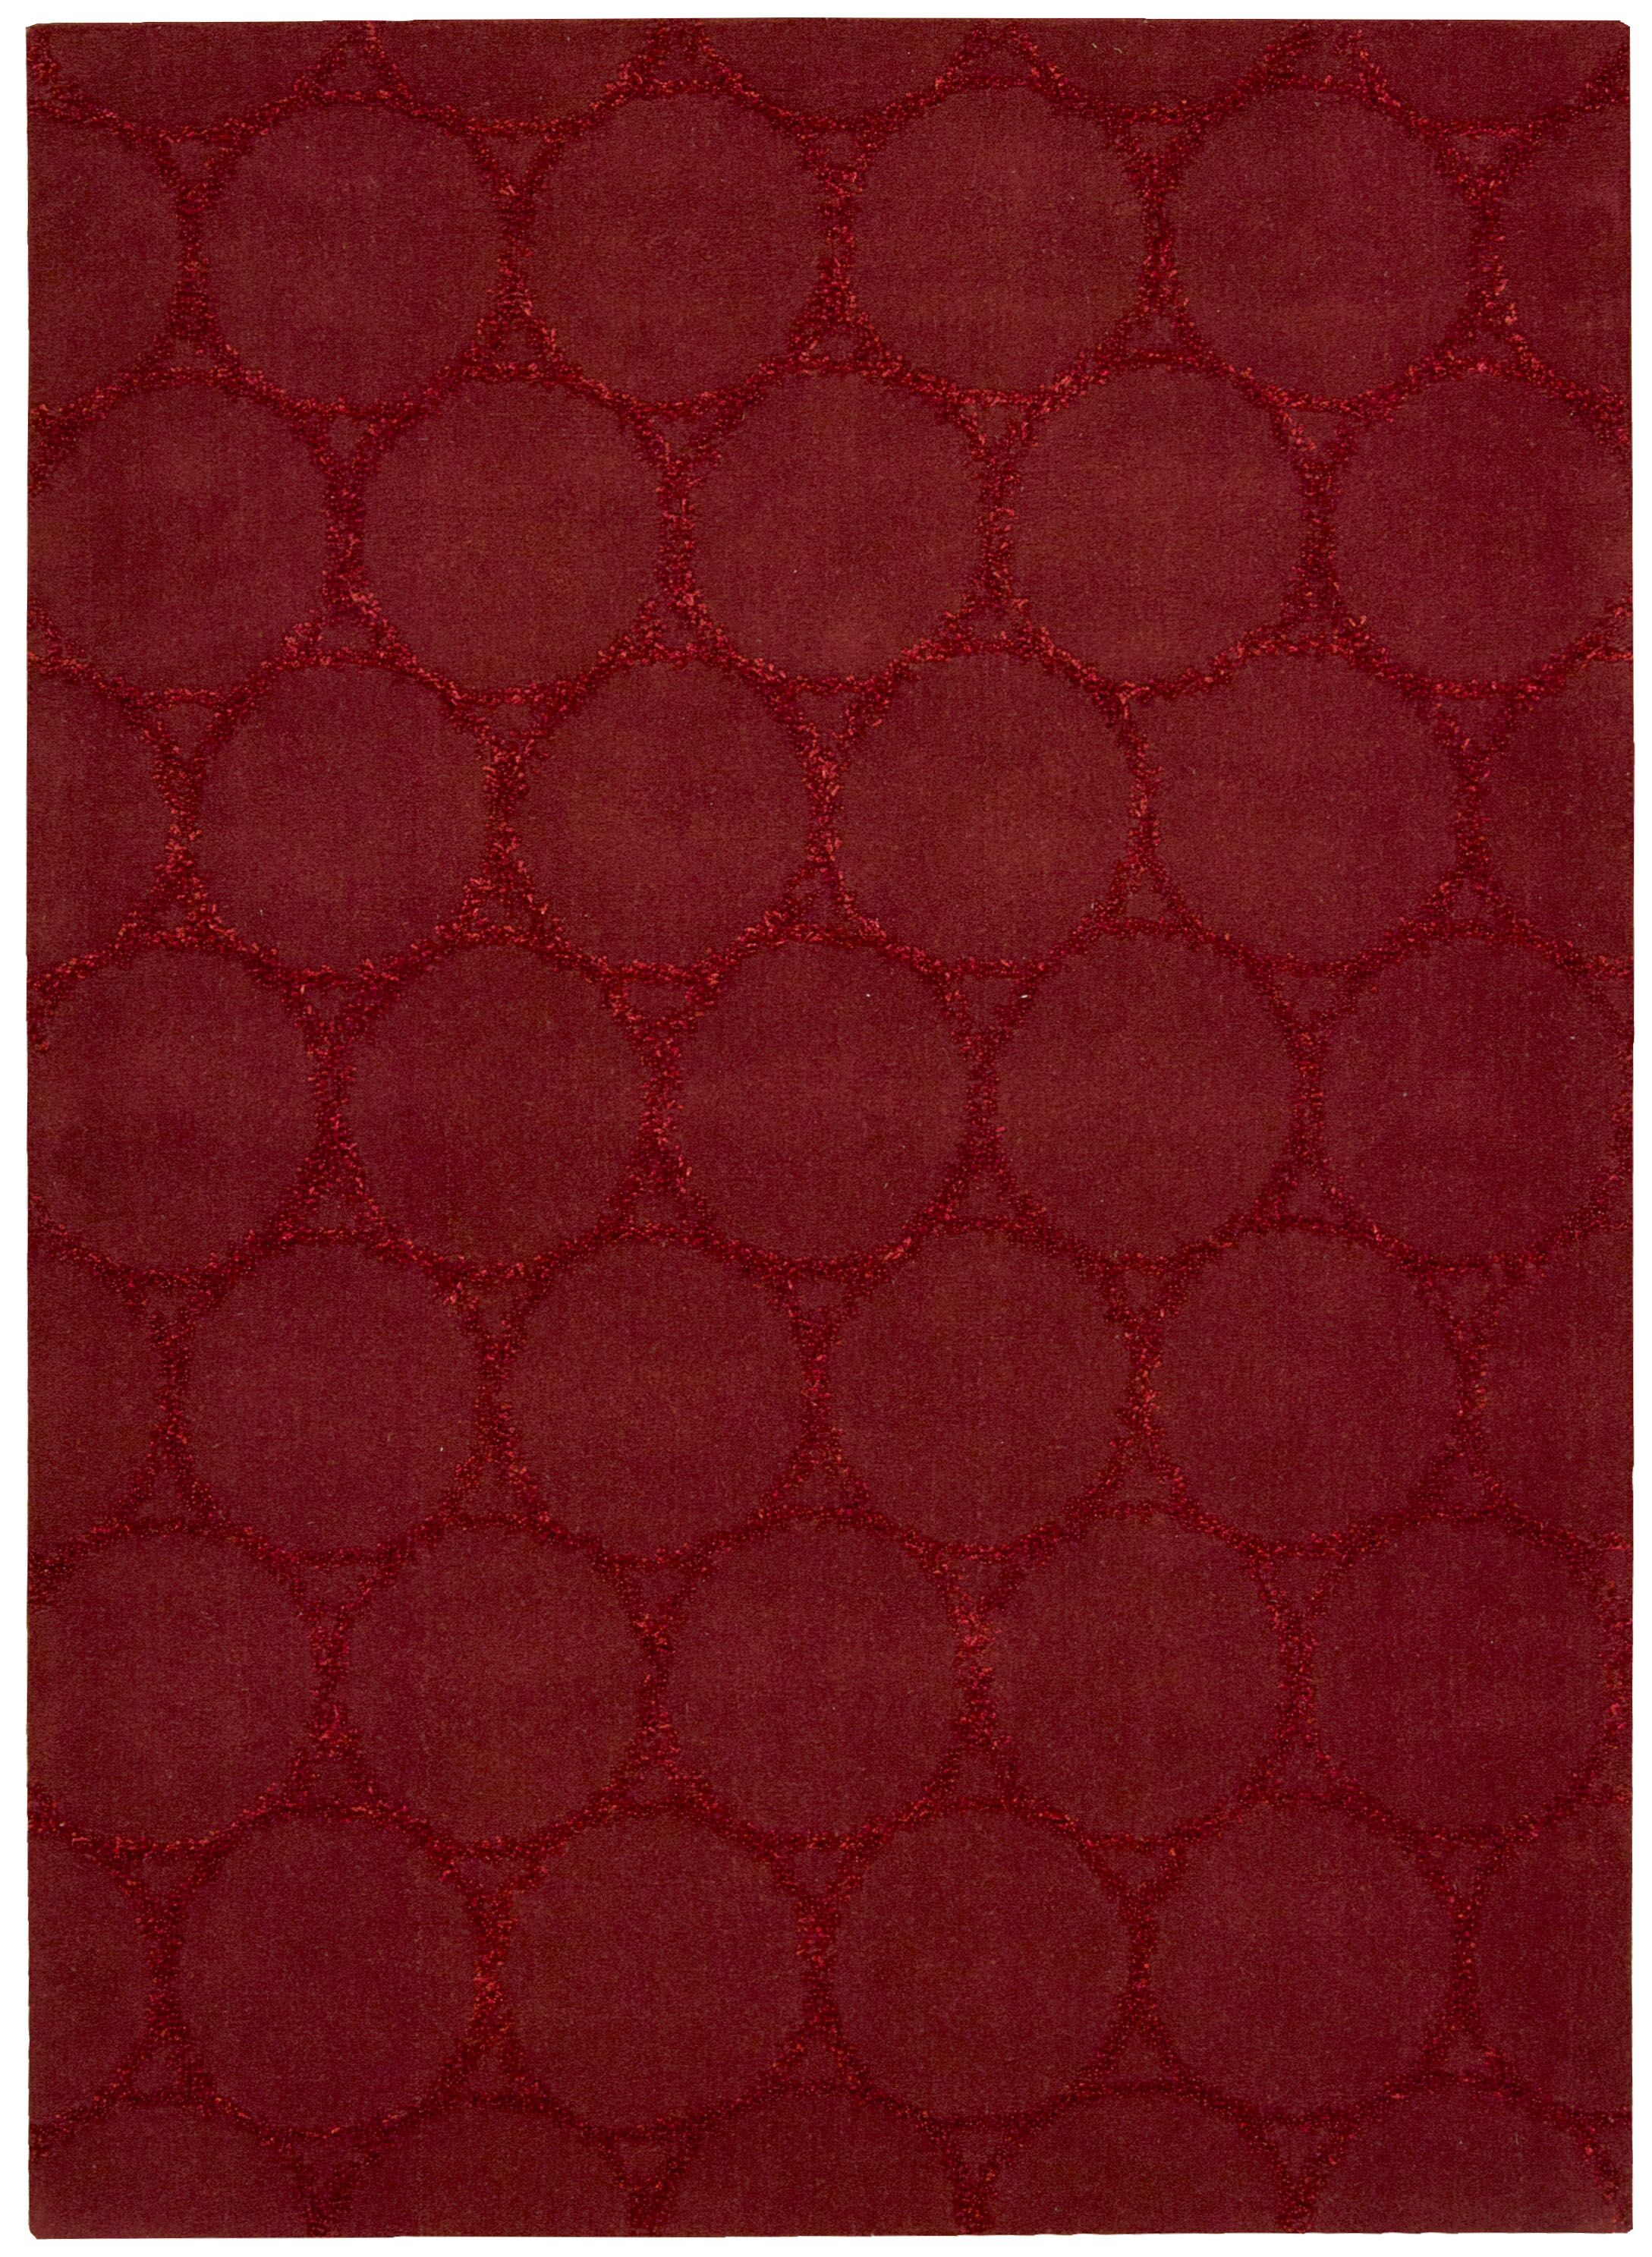 Rochon Hand-Woven Red Area Rug Rug Size: Rectangle 3'6